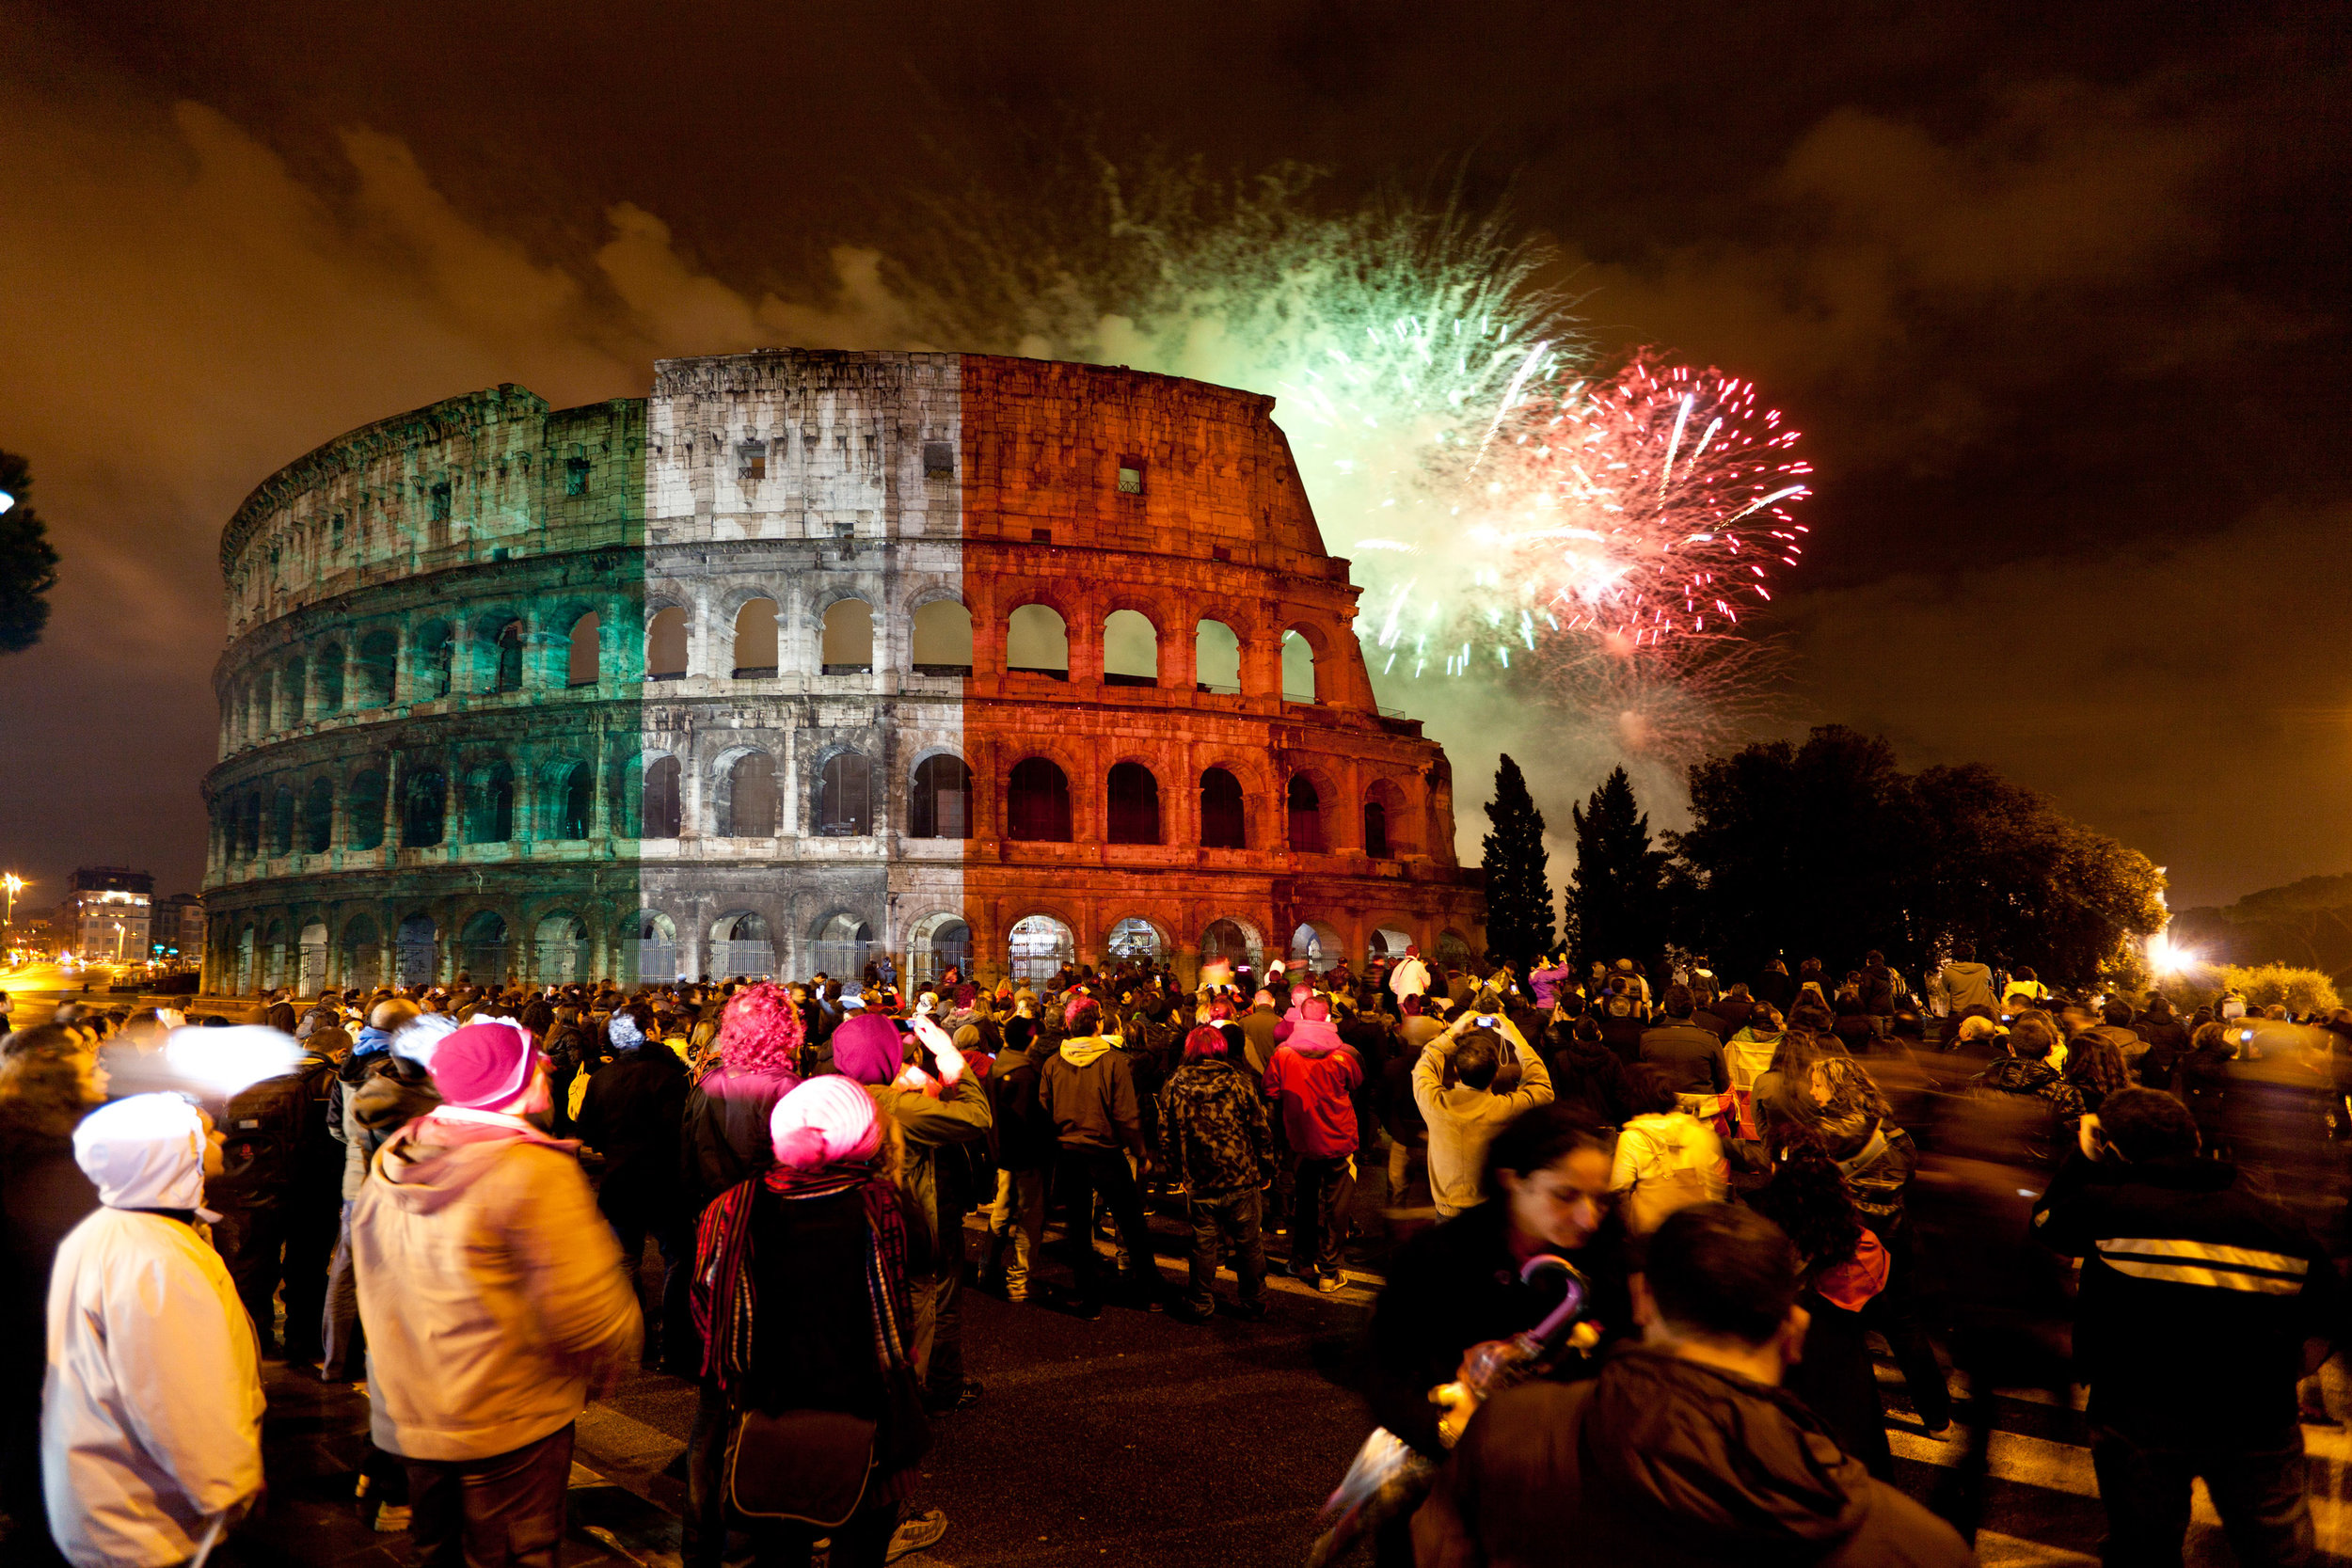 Colosseum-Rom_150-Years-Republica-Italia_by-Gerry-Hofstetter-_MG_9625.jpg